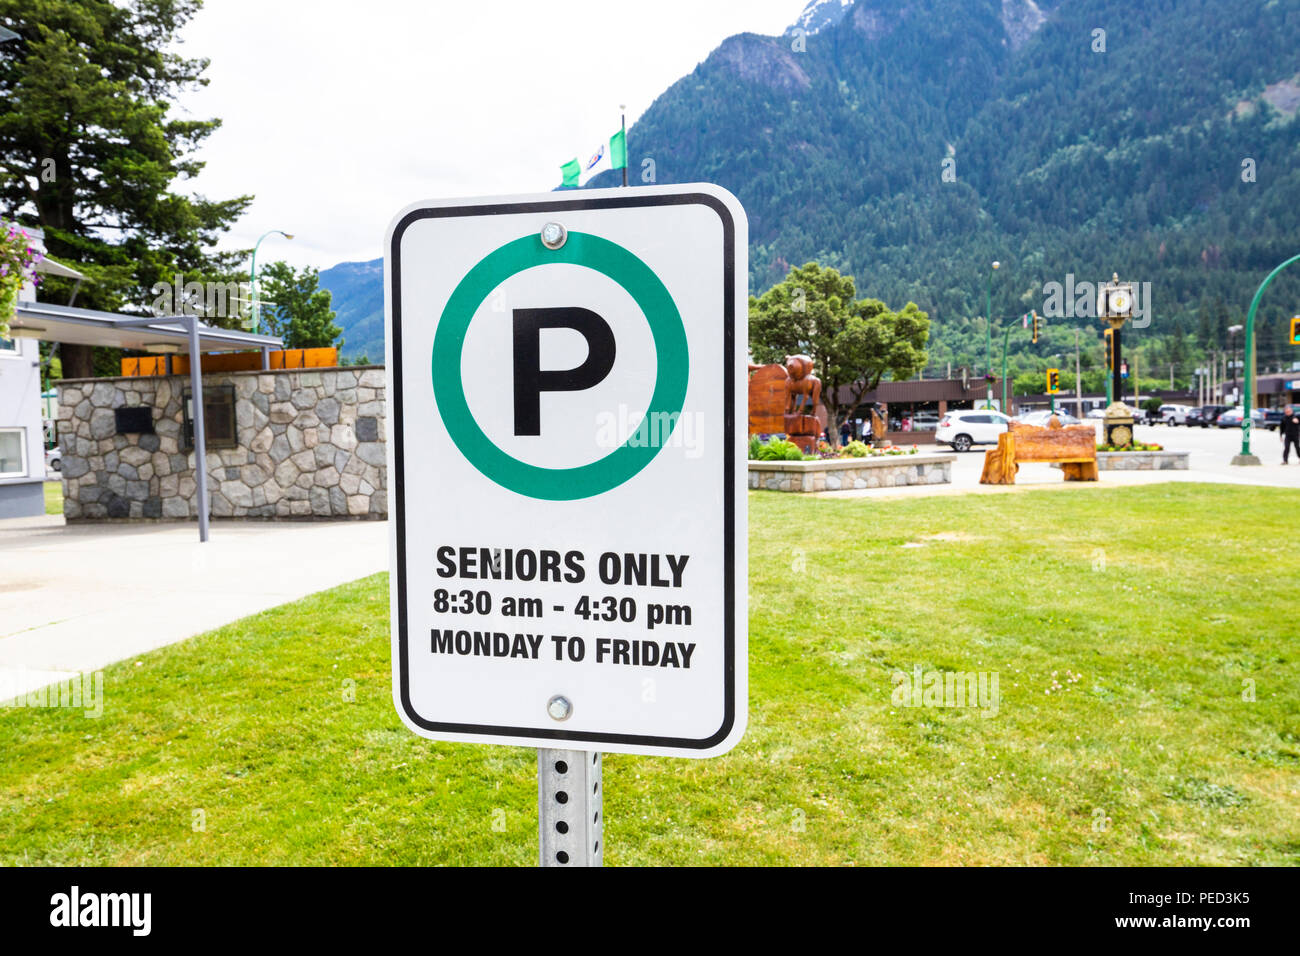 'Seniors Only' parking sign in a car park in the town of Hope, British Columbia, Canada - Stock Image